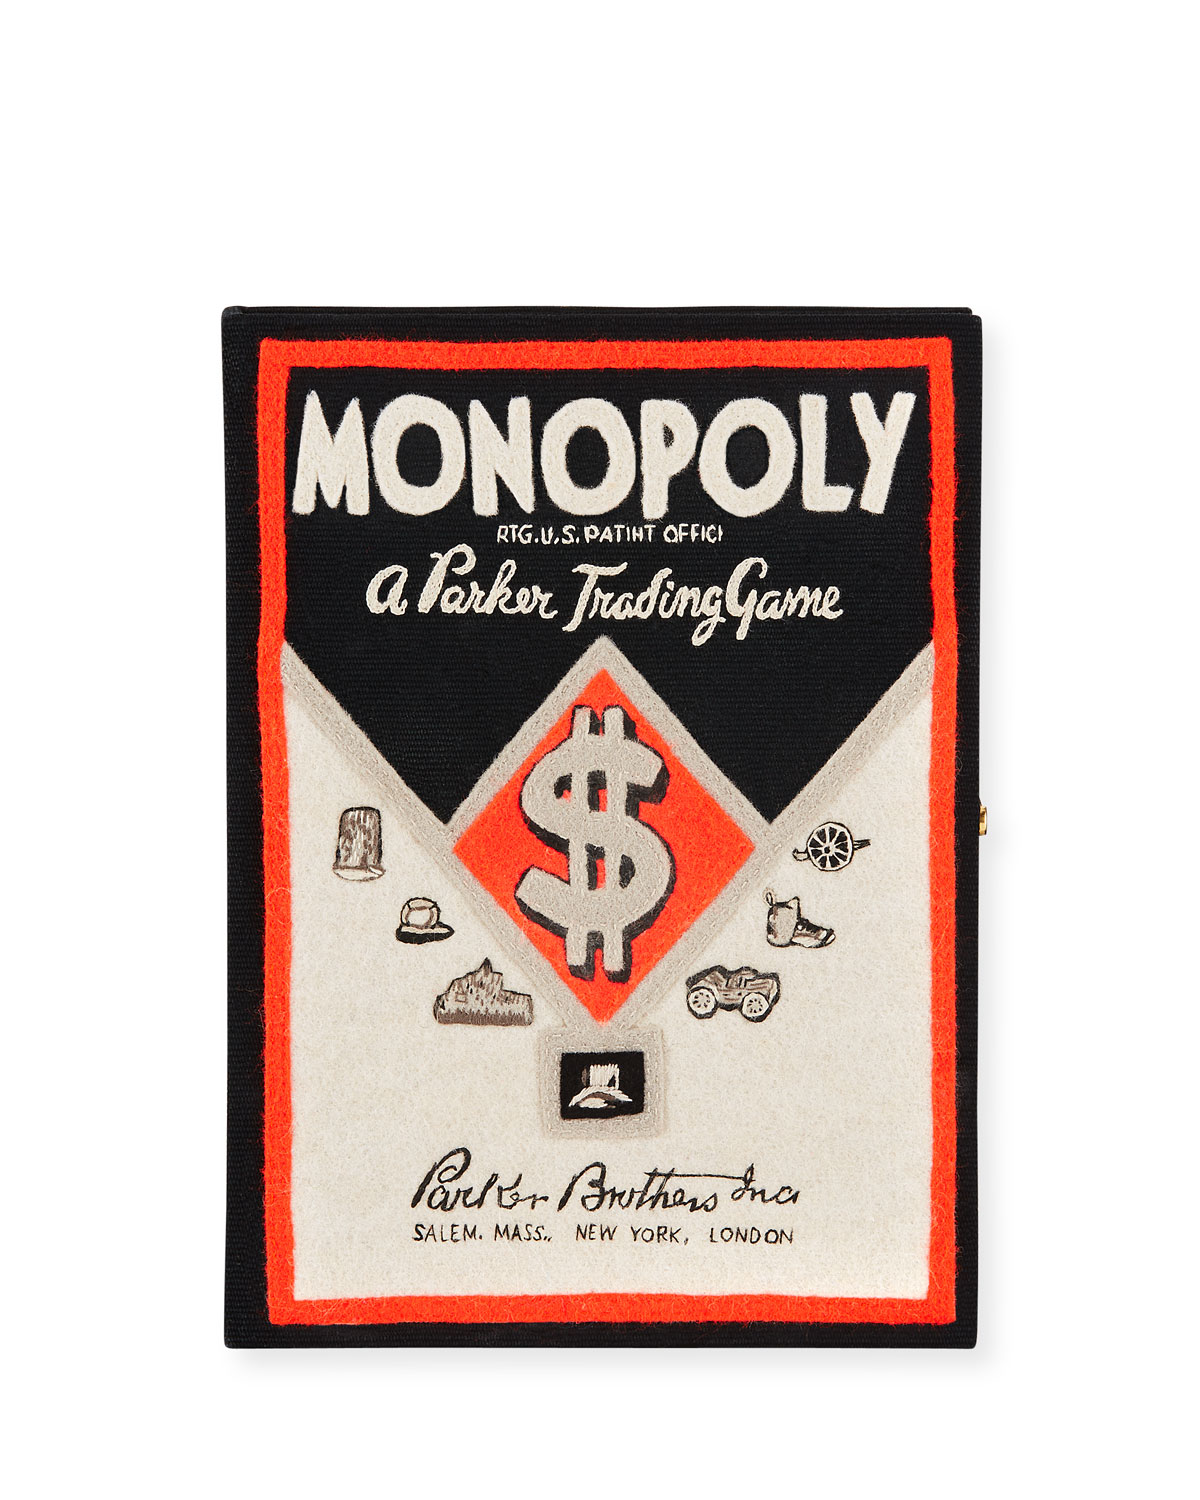 Monopoly Parker Bros Trading Game Box Clutch Bag in Black